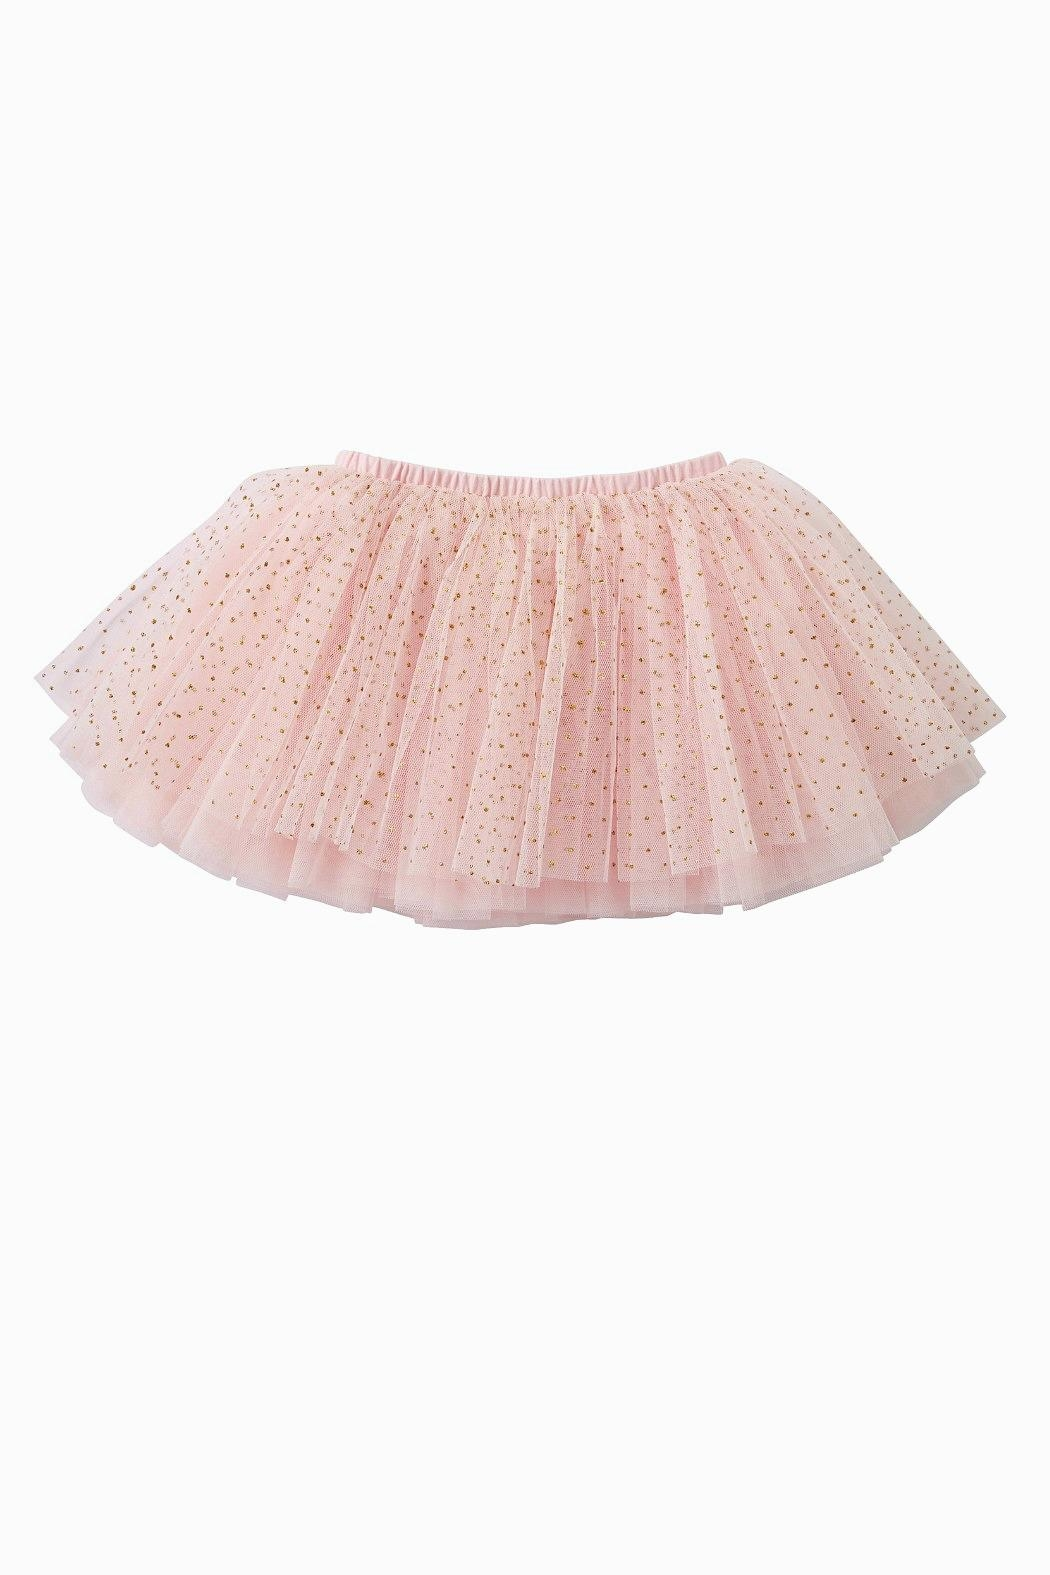 Mud Pie Pink Gold-Glitter-Mesh Tutu - Front Cropped Image